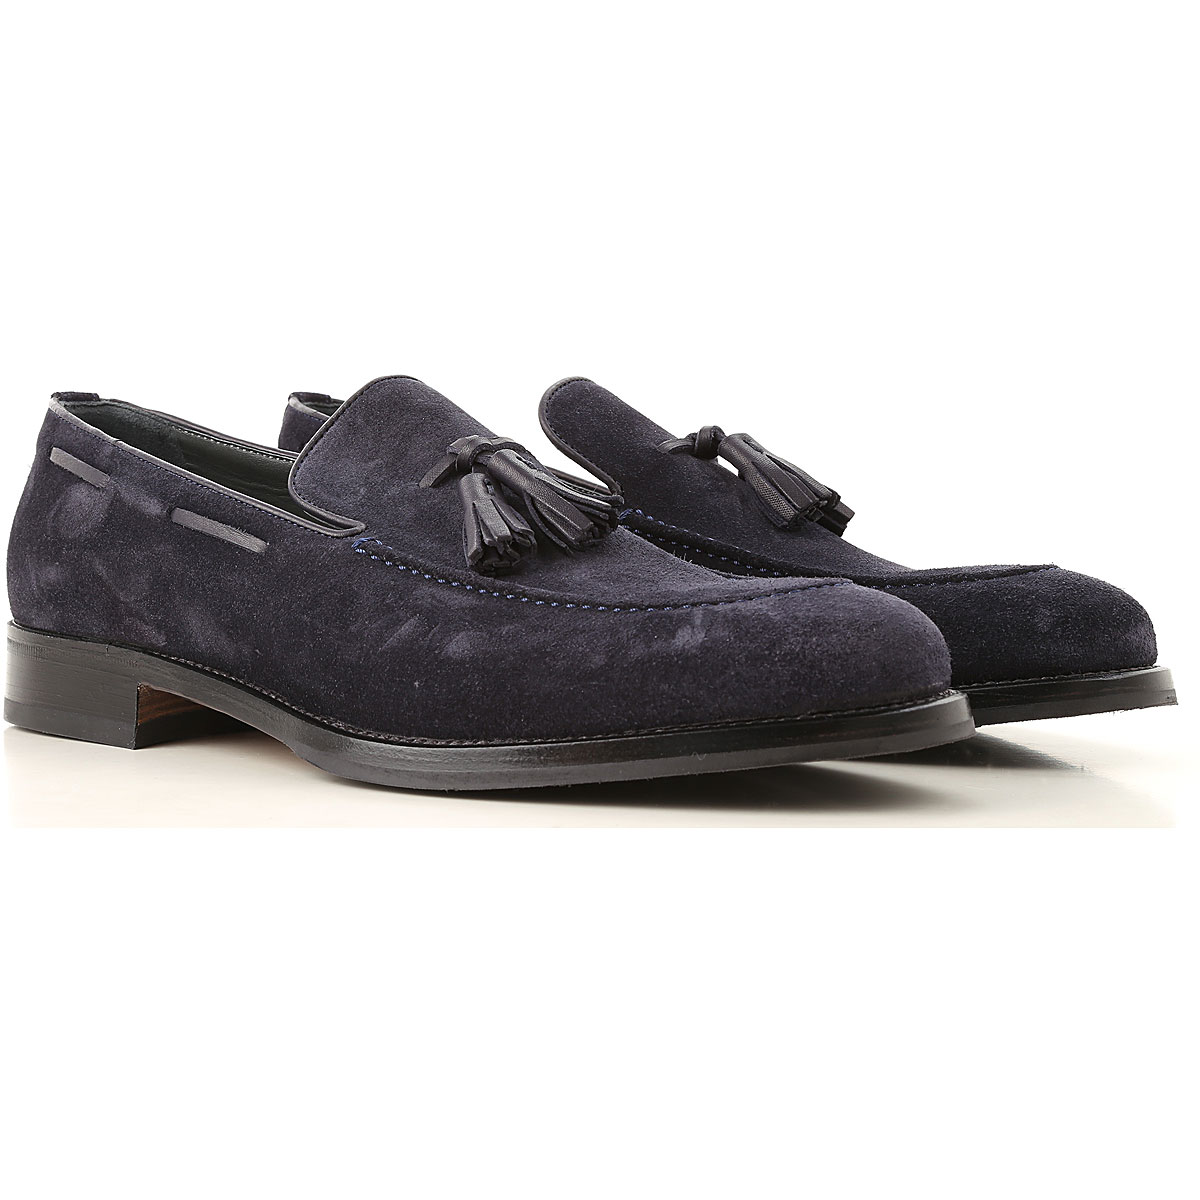 Image of Moreschi Loafers for Men, Blue, suede, 2017, 10 10.5 11 11.5 12 13 7 7.5 8 8.5 9 9.5